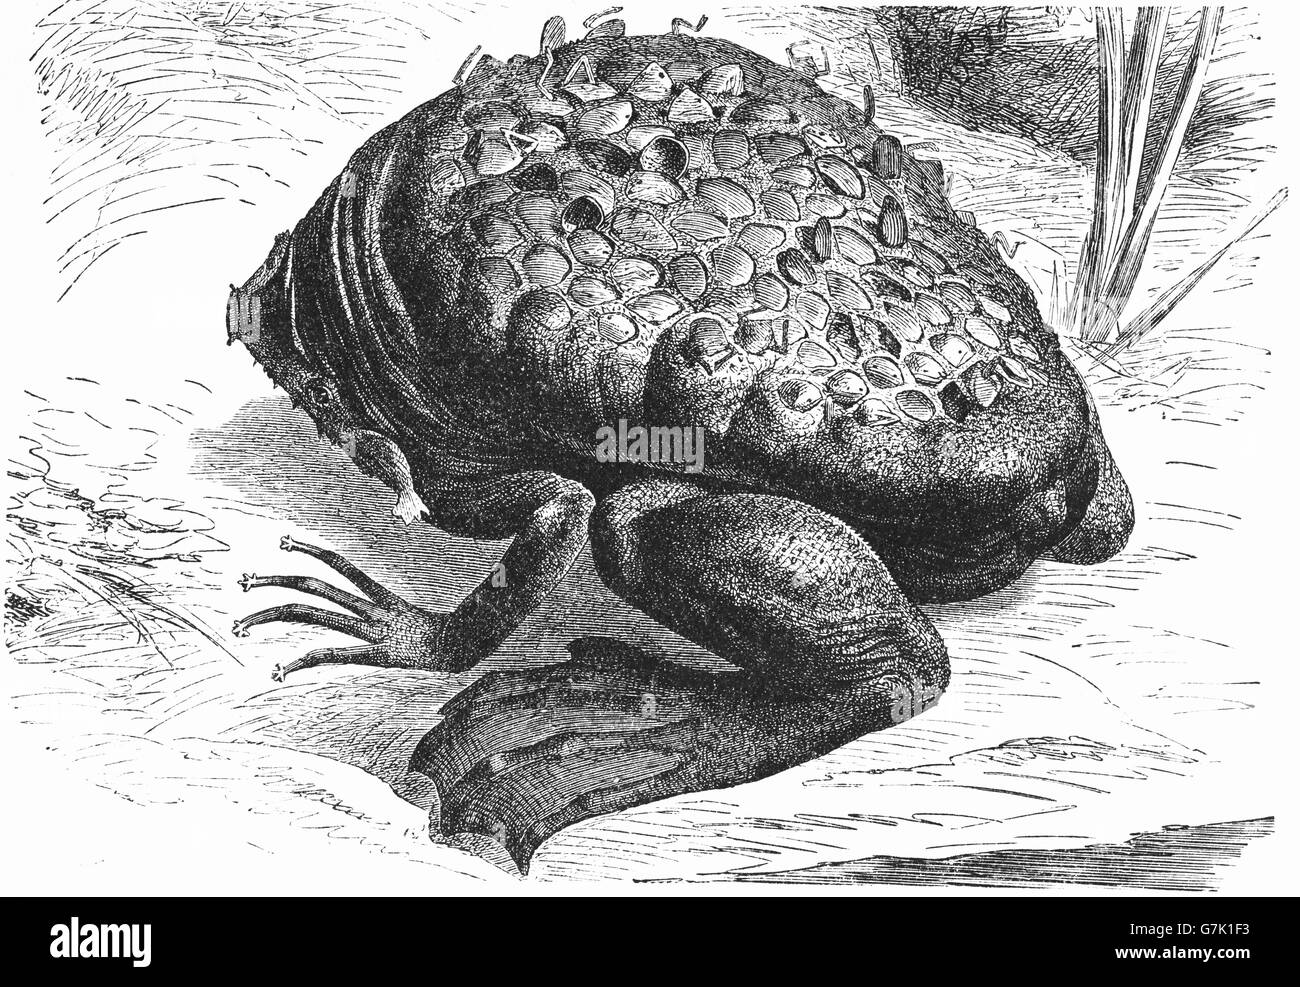 Common Suriname toad, star-fingered toad, Pipa pipa, Pipa americana, illustration from book dated 1904 - Stock Image